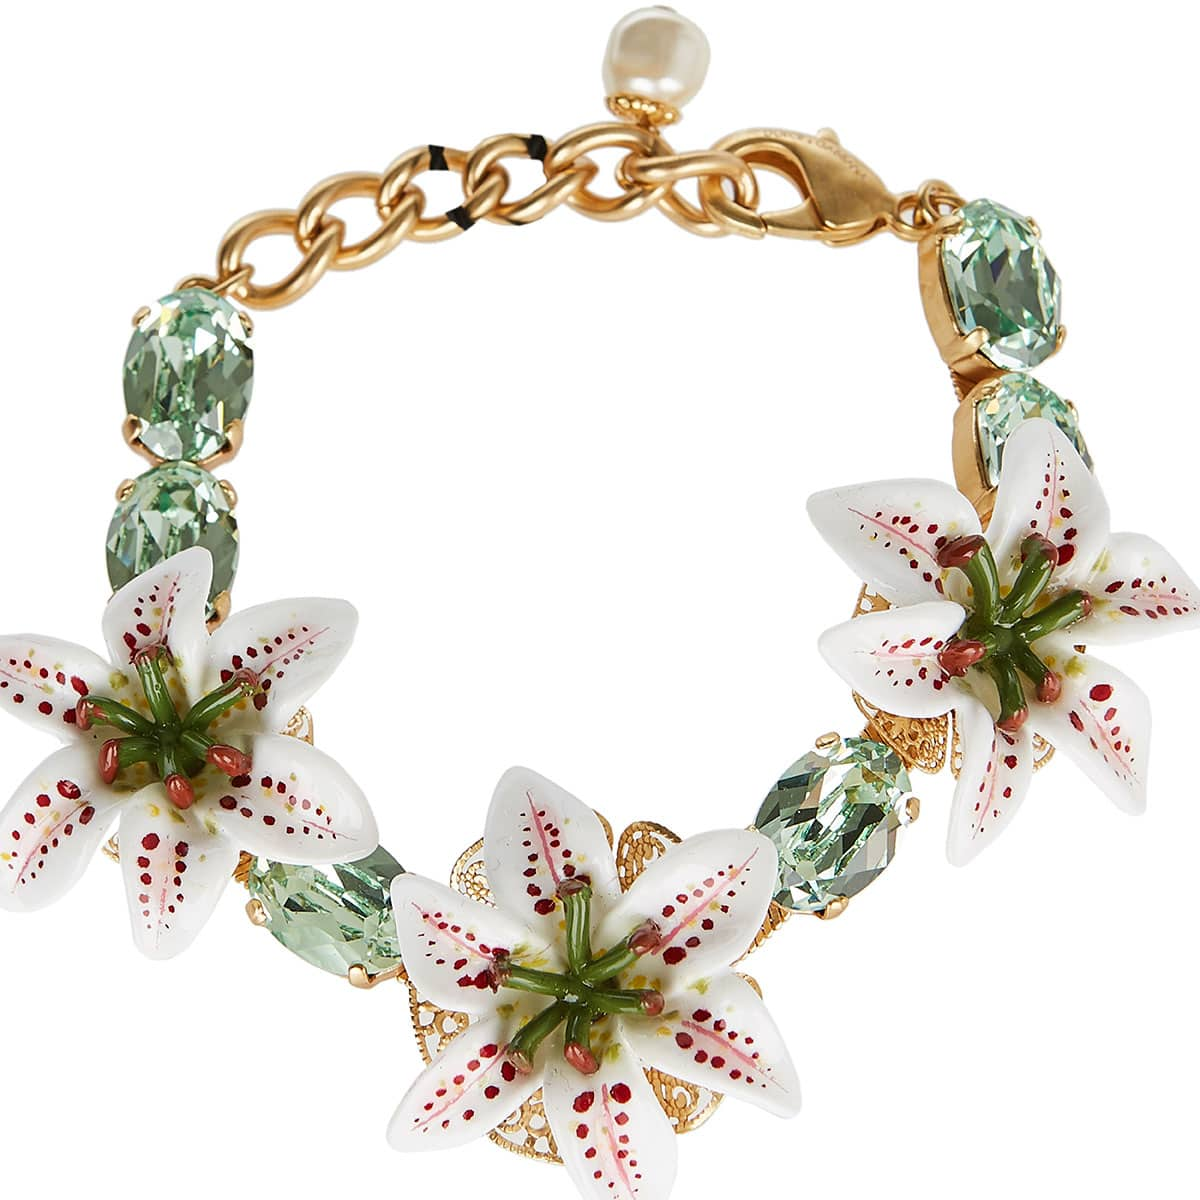 Lily and crystal embellished chain bracelet